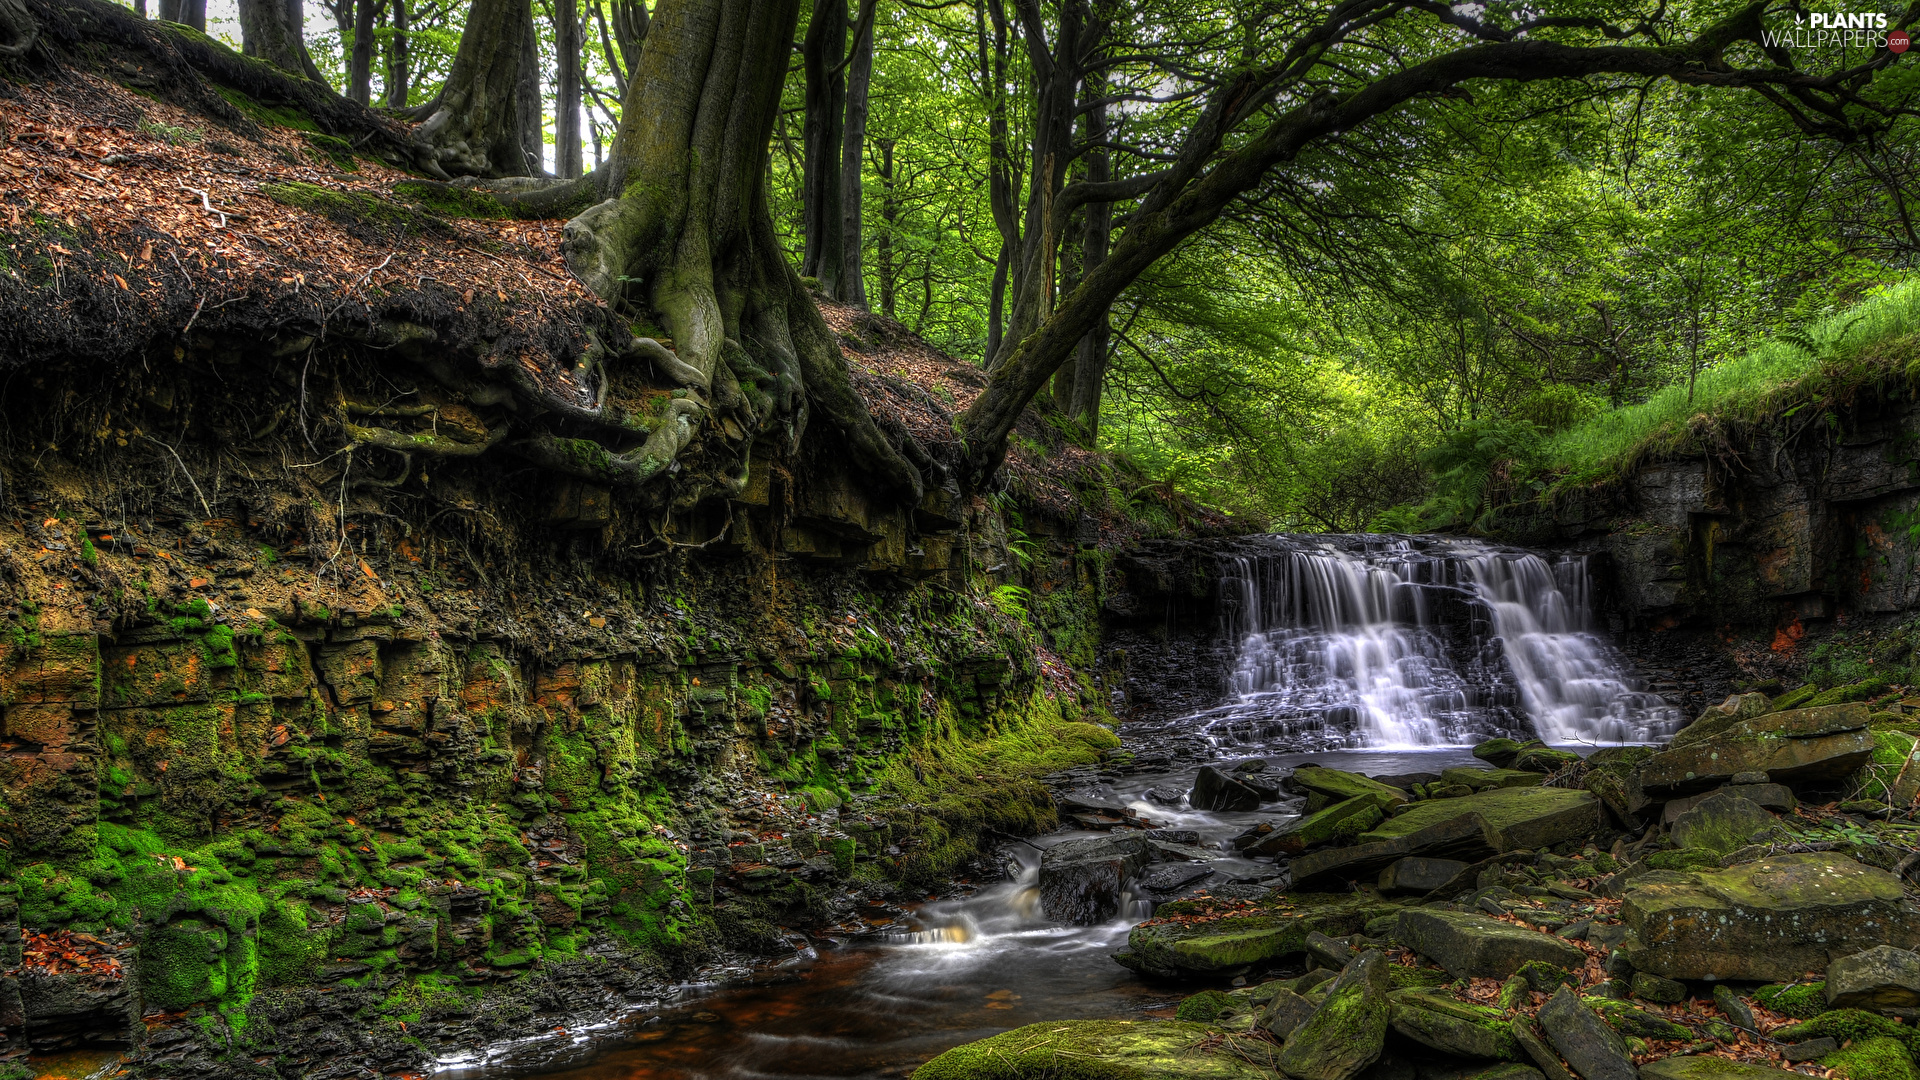 River, mossy, viewes, Stones, trees, waterfall, small, forest